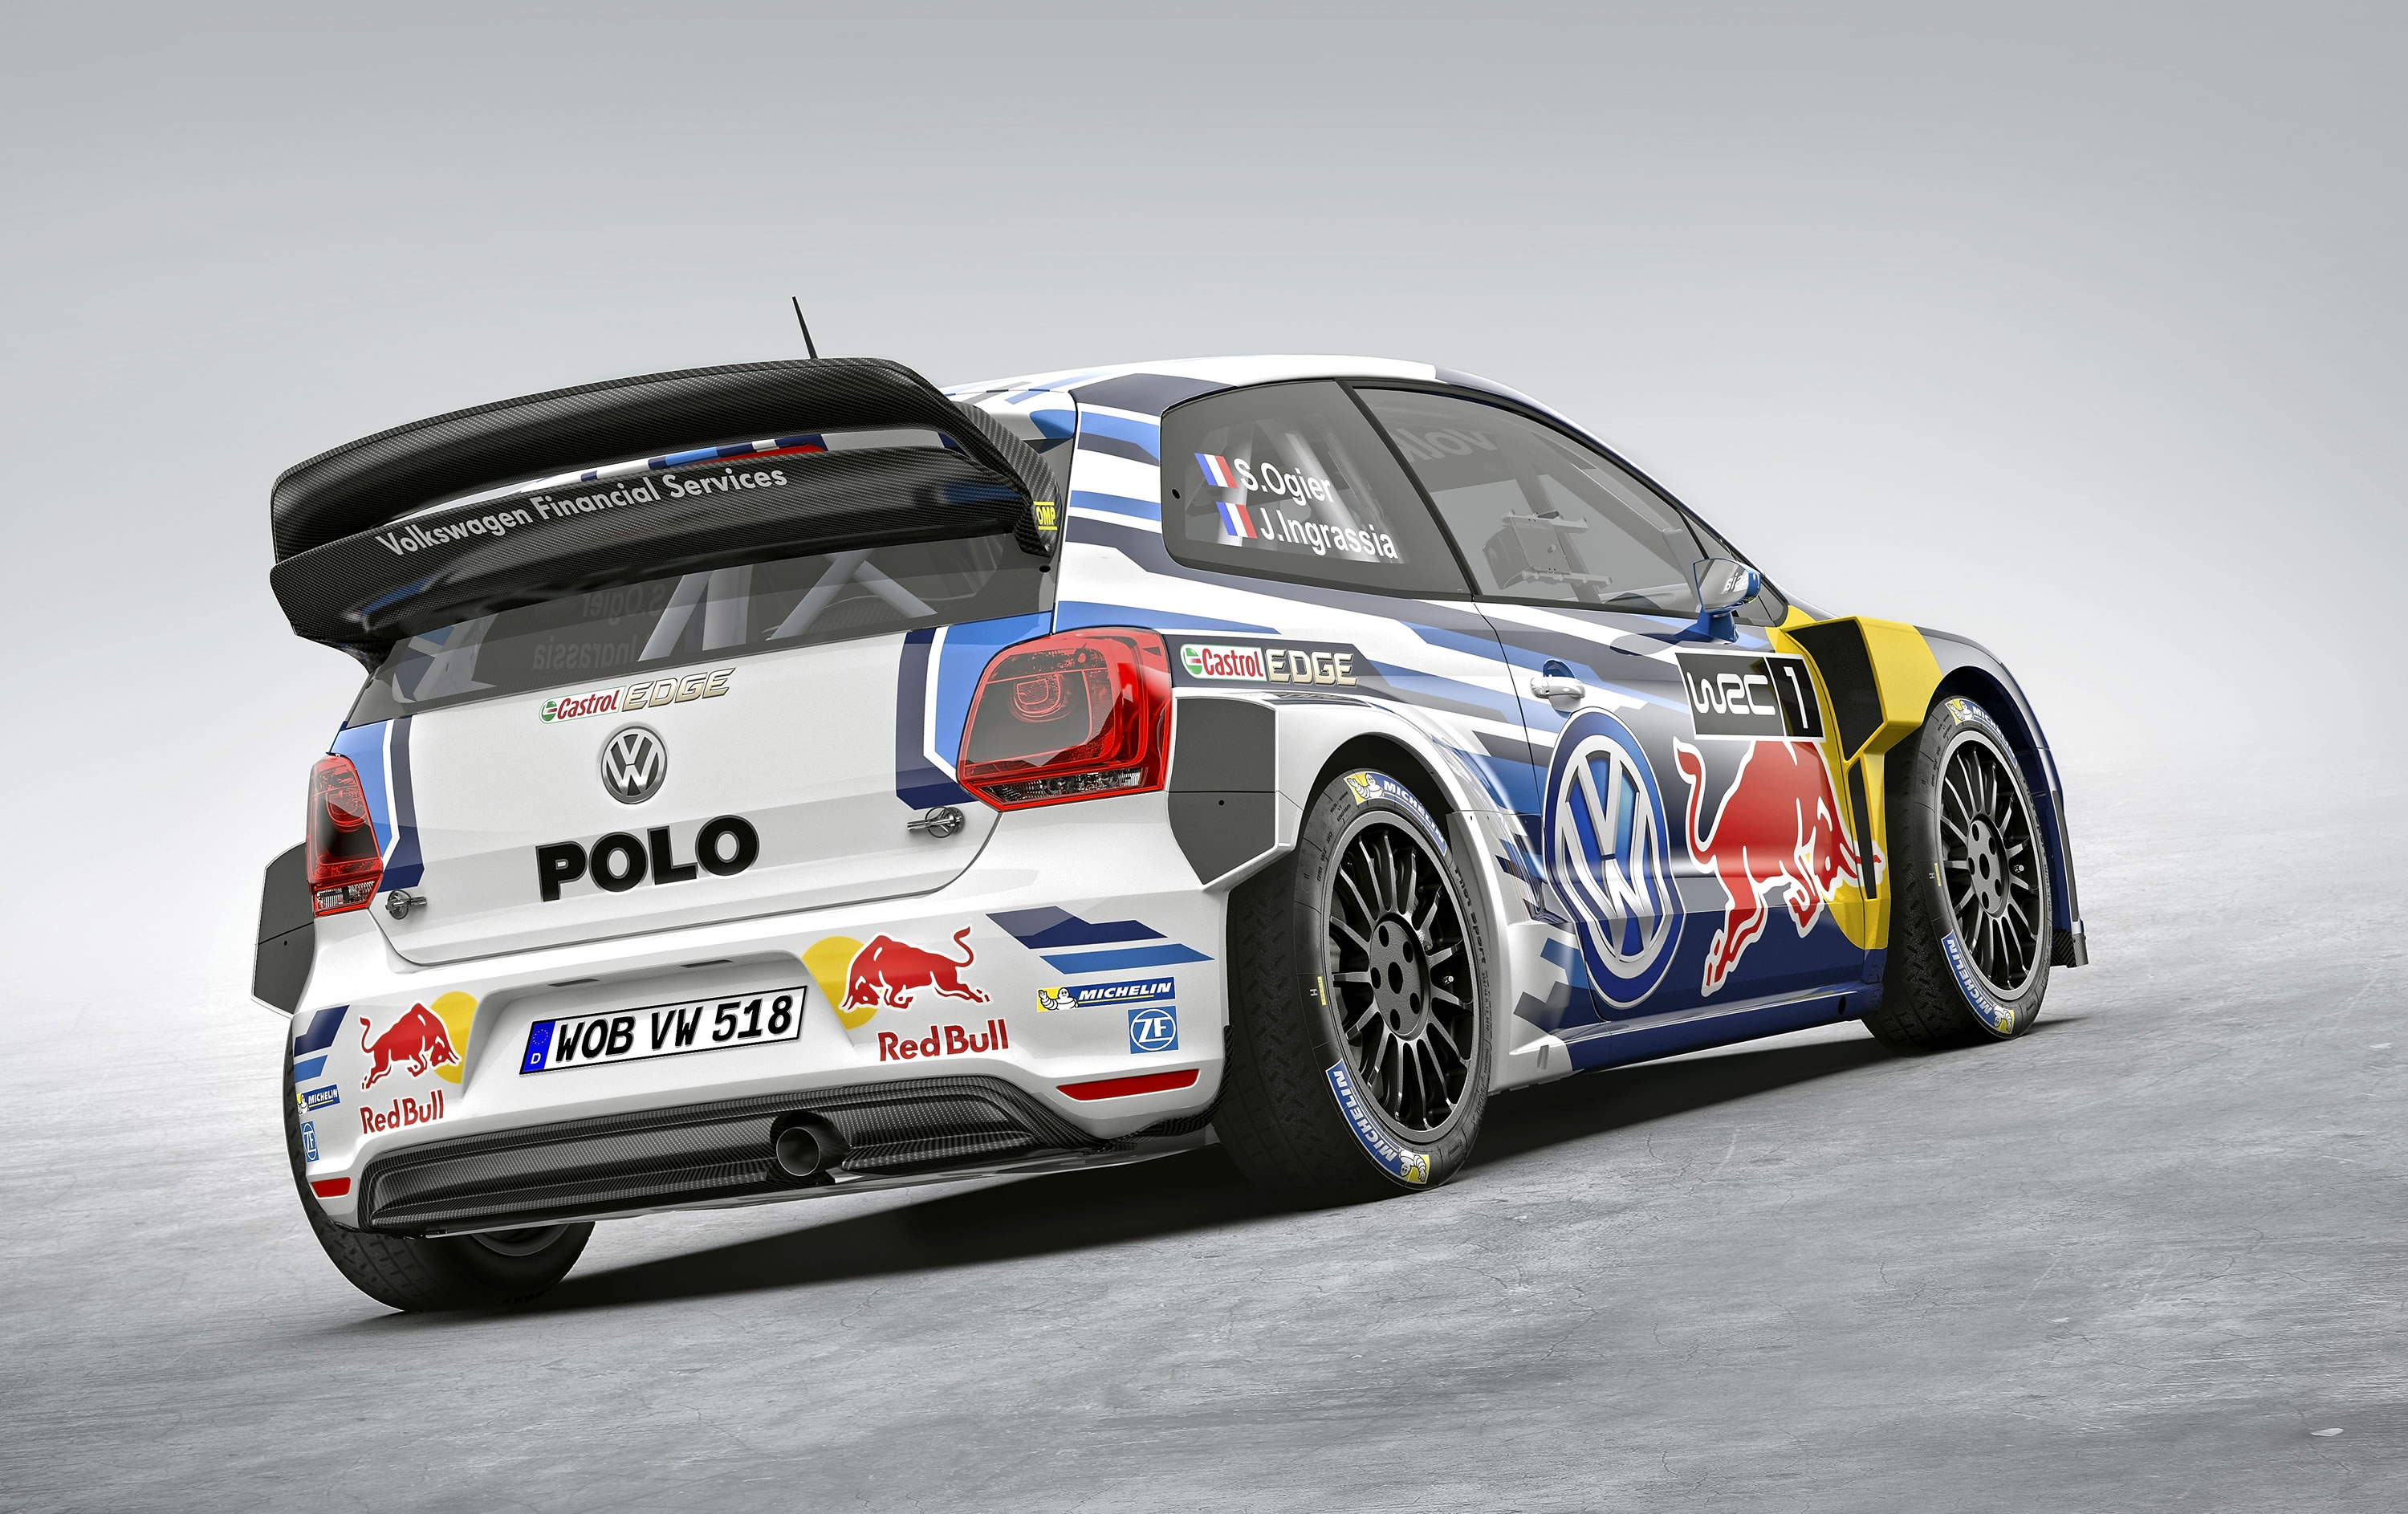 2015 volkswagen polo r wrc rally car photos specs and review rs. Black Bedroom Furniture Sets. Home Design Ideas